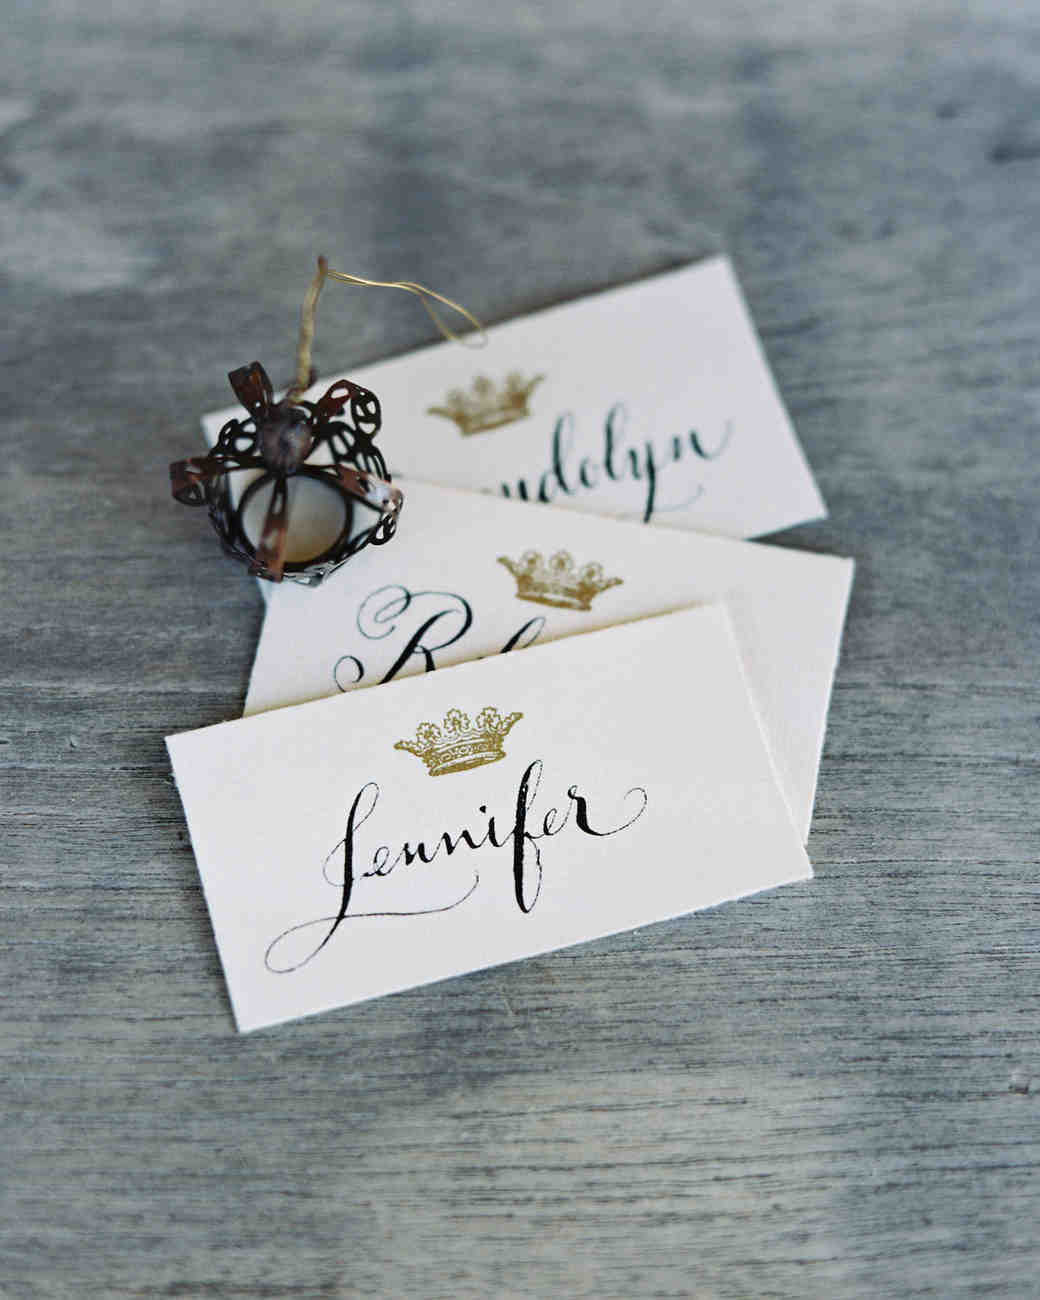 ciera preston wedding place cards